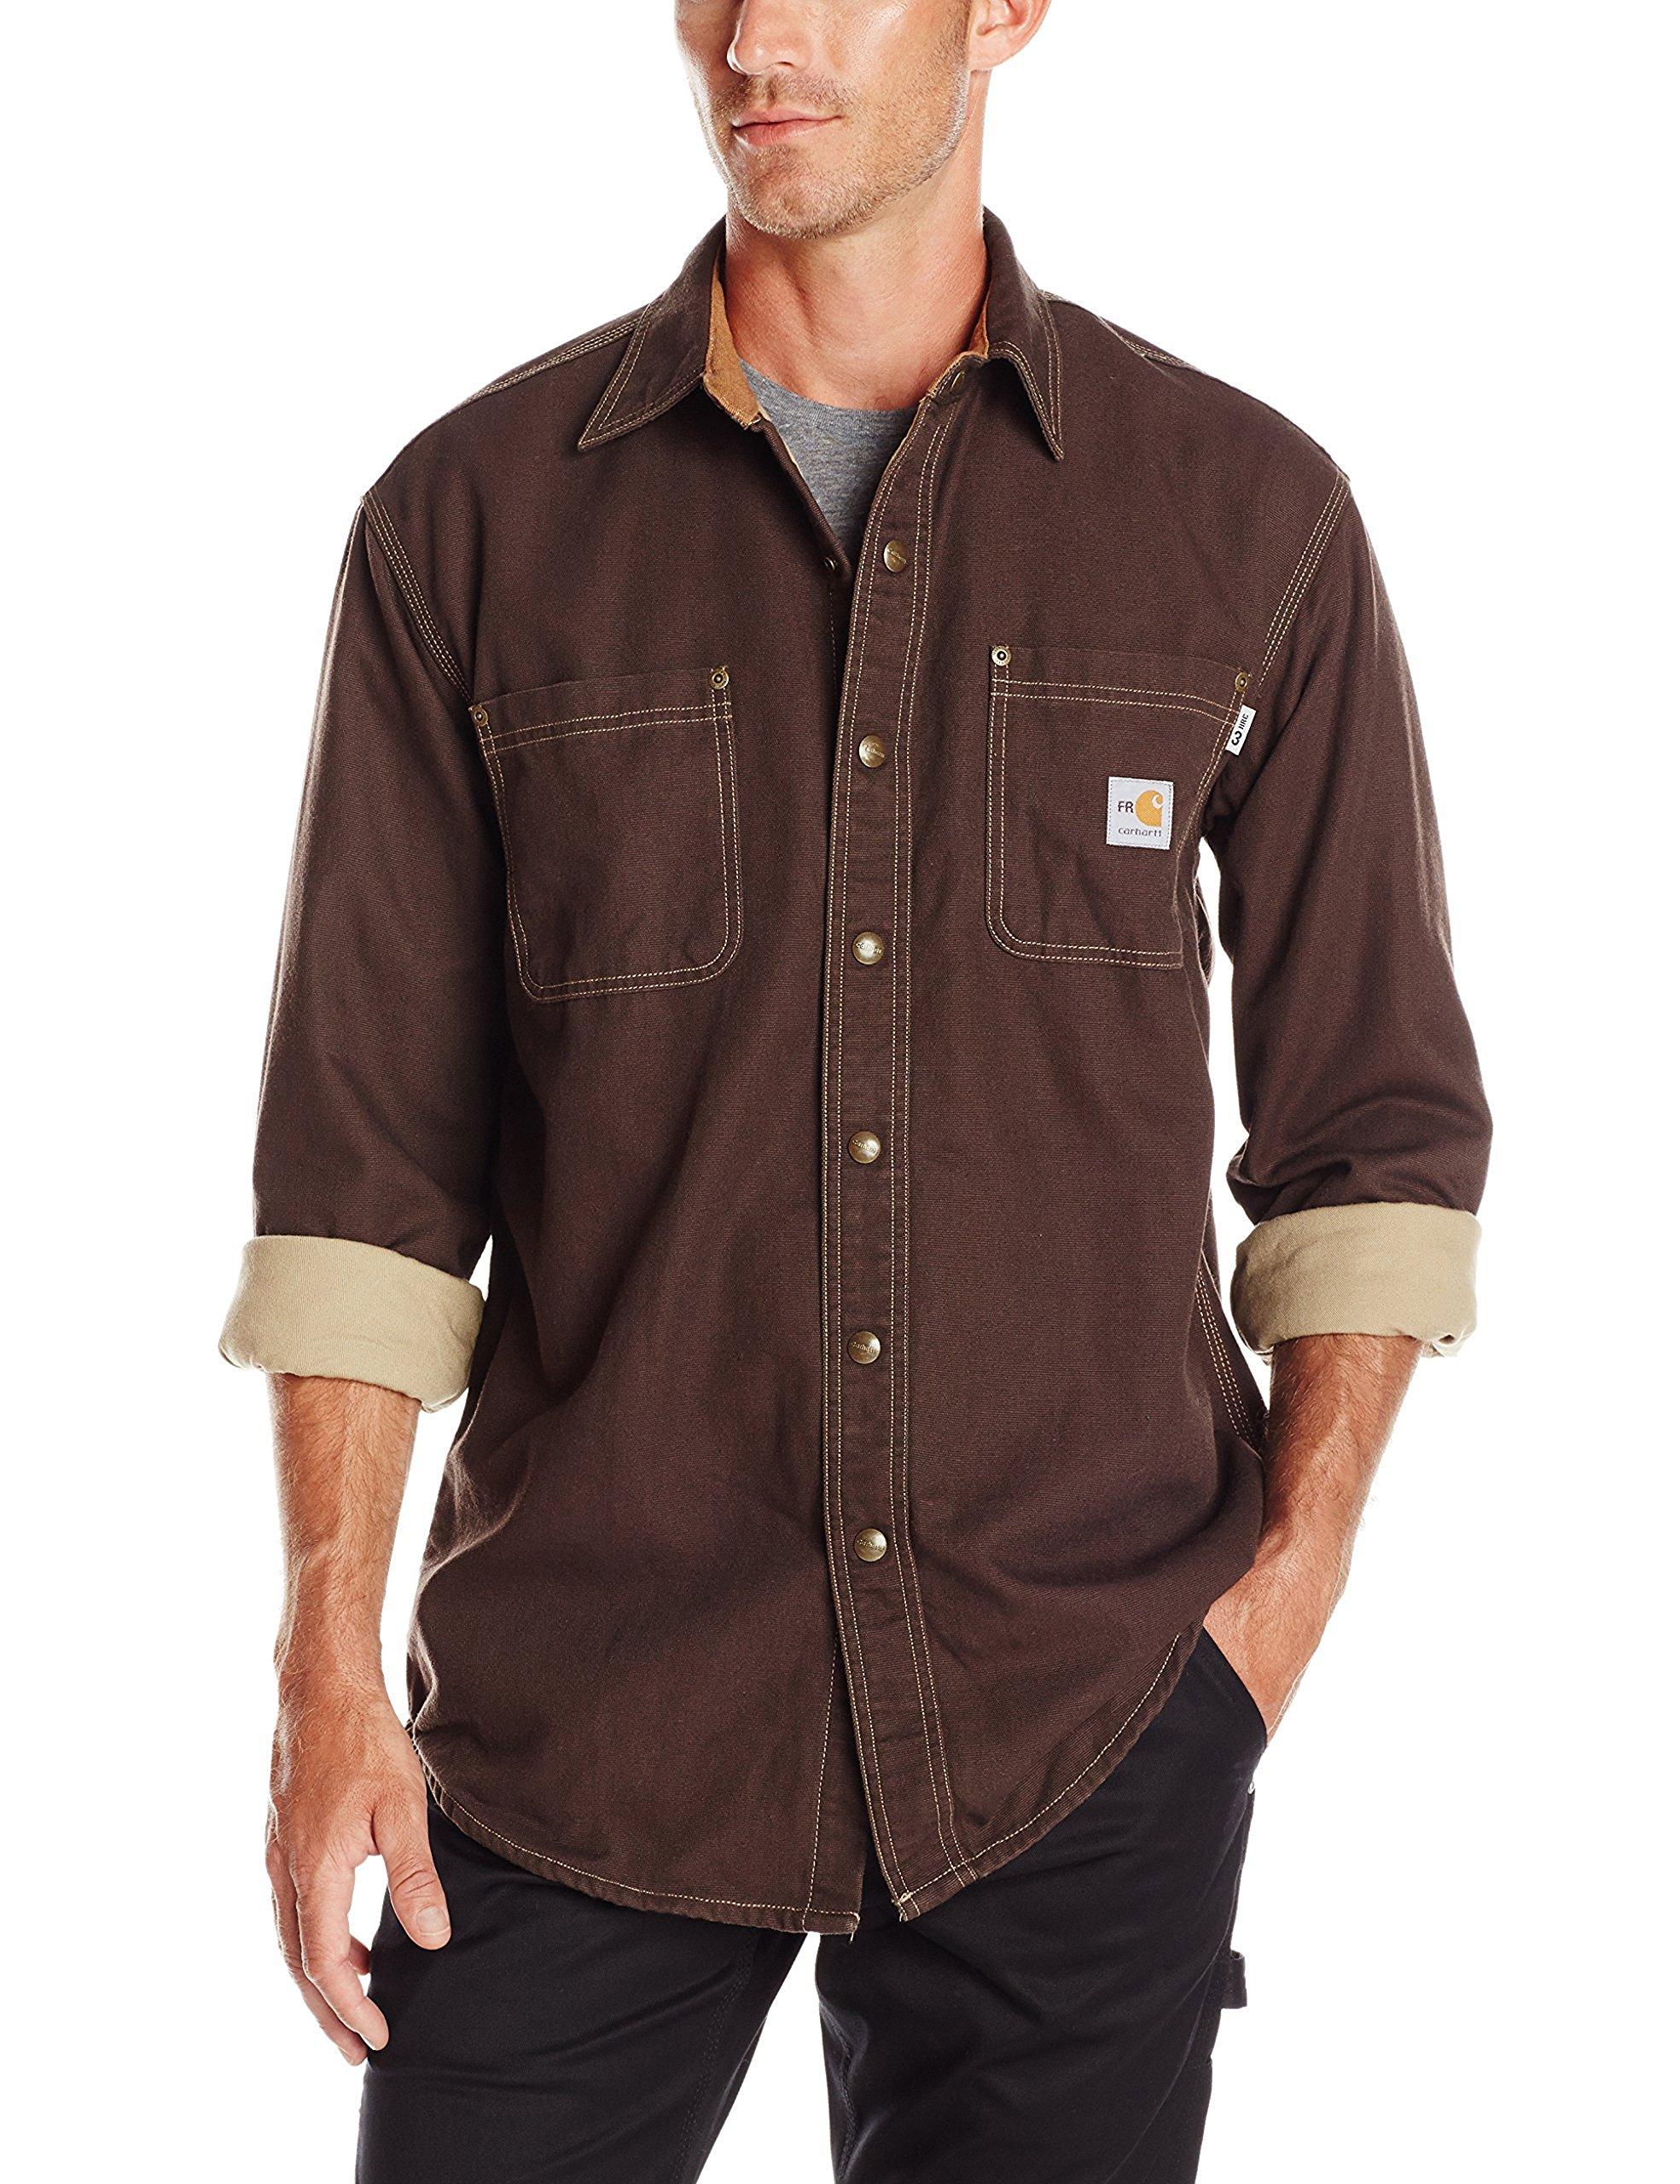 Carhartt Men's Flame Resistant Canvas Shirt Jacket,Dark Brown,Large by Carhartt